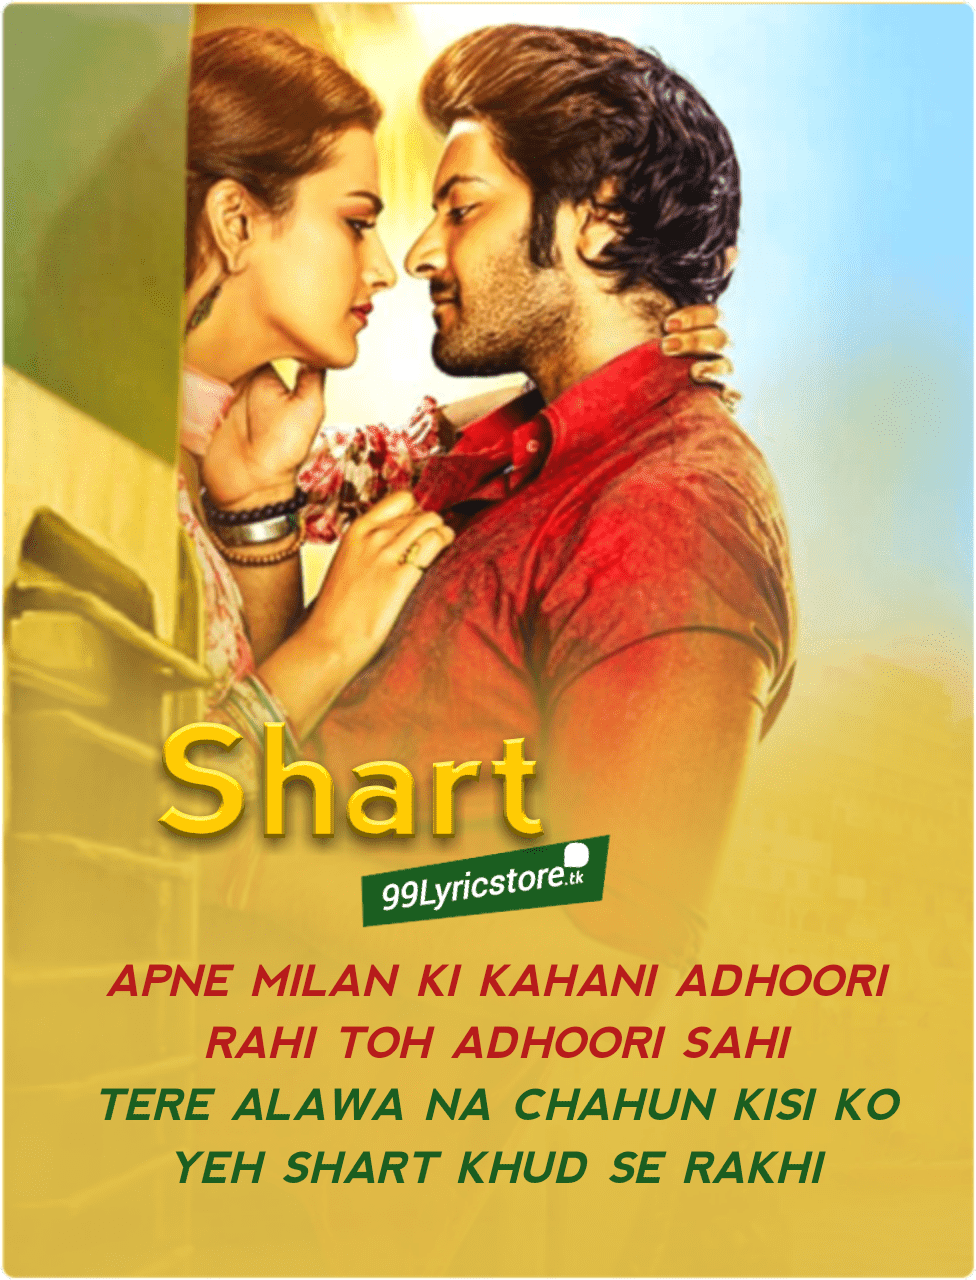 Sonu Nigam Song Shart Lyrics Milan Talkies